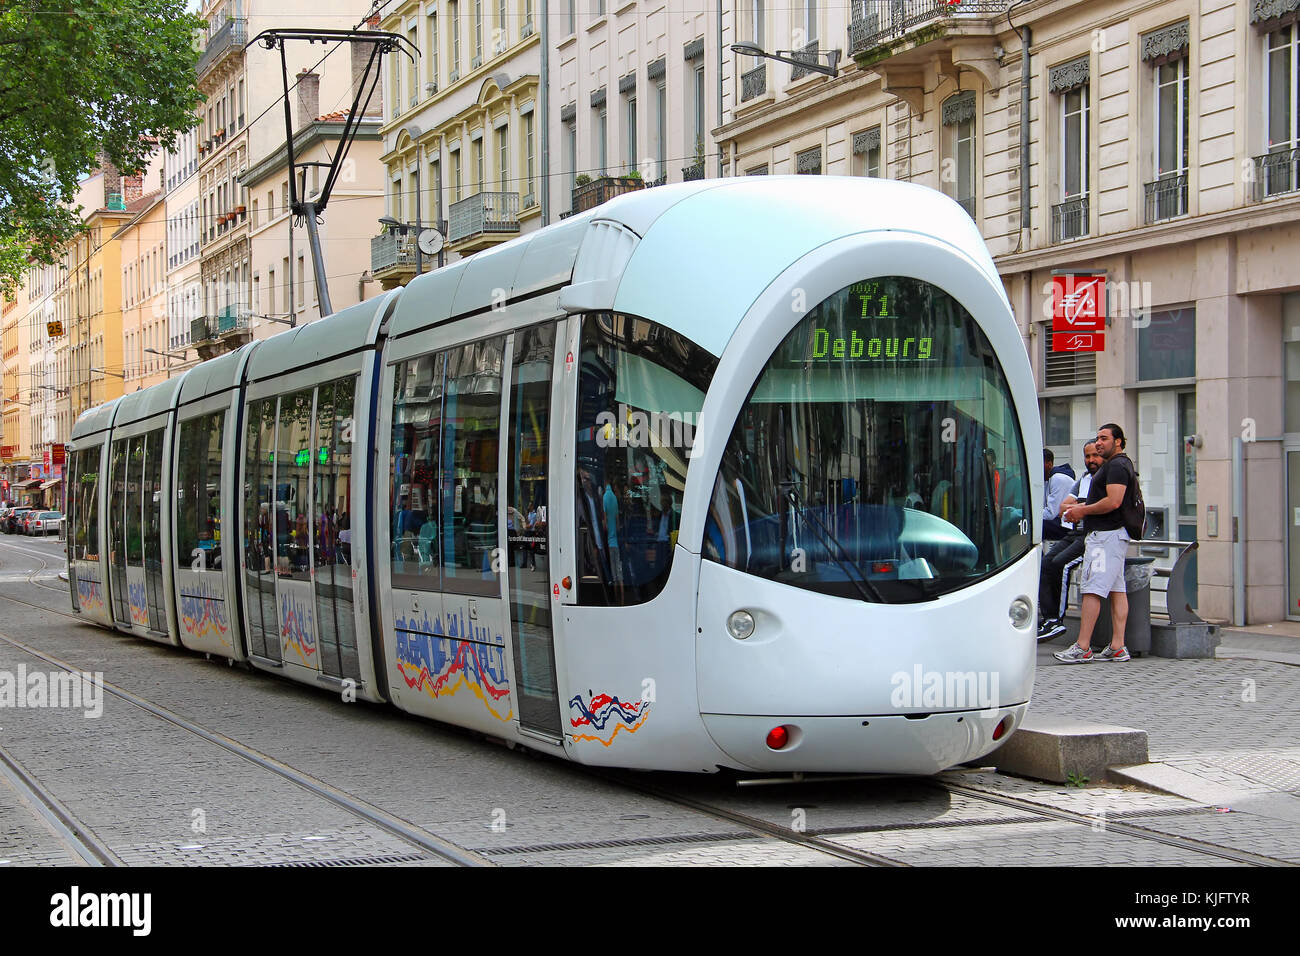 tram lyon france tramway stock photos tram lyon france tramway stock images alamy. Black Bedroom Furniture Sets. Home Design Ideas